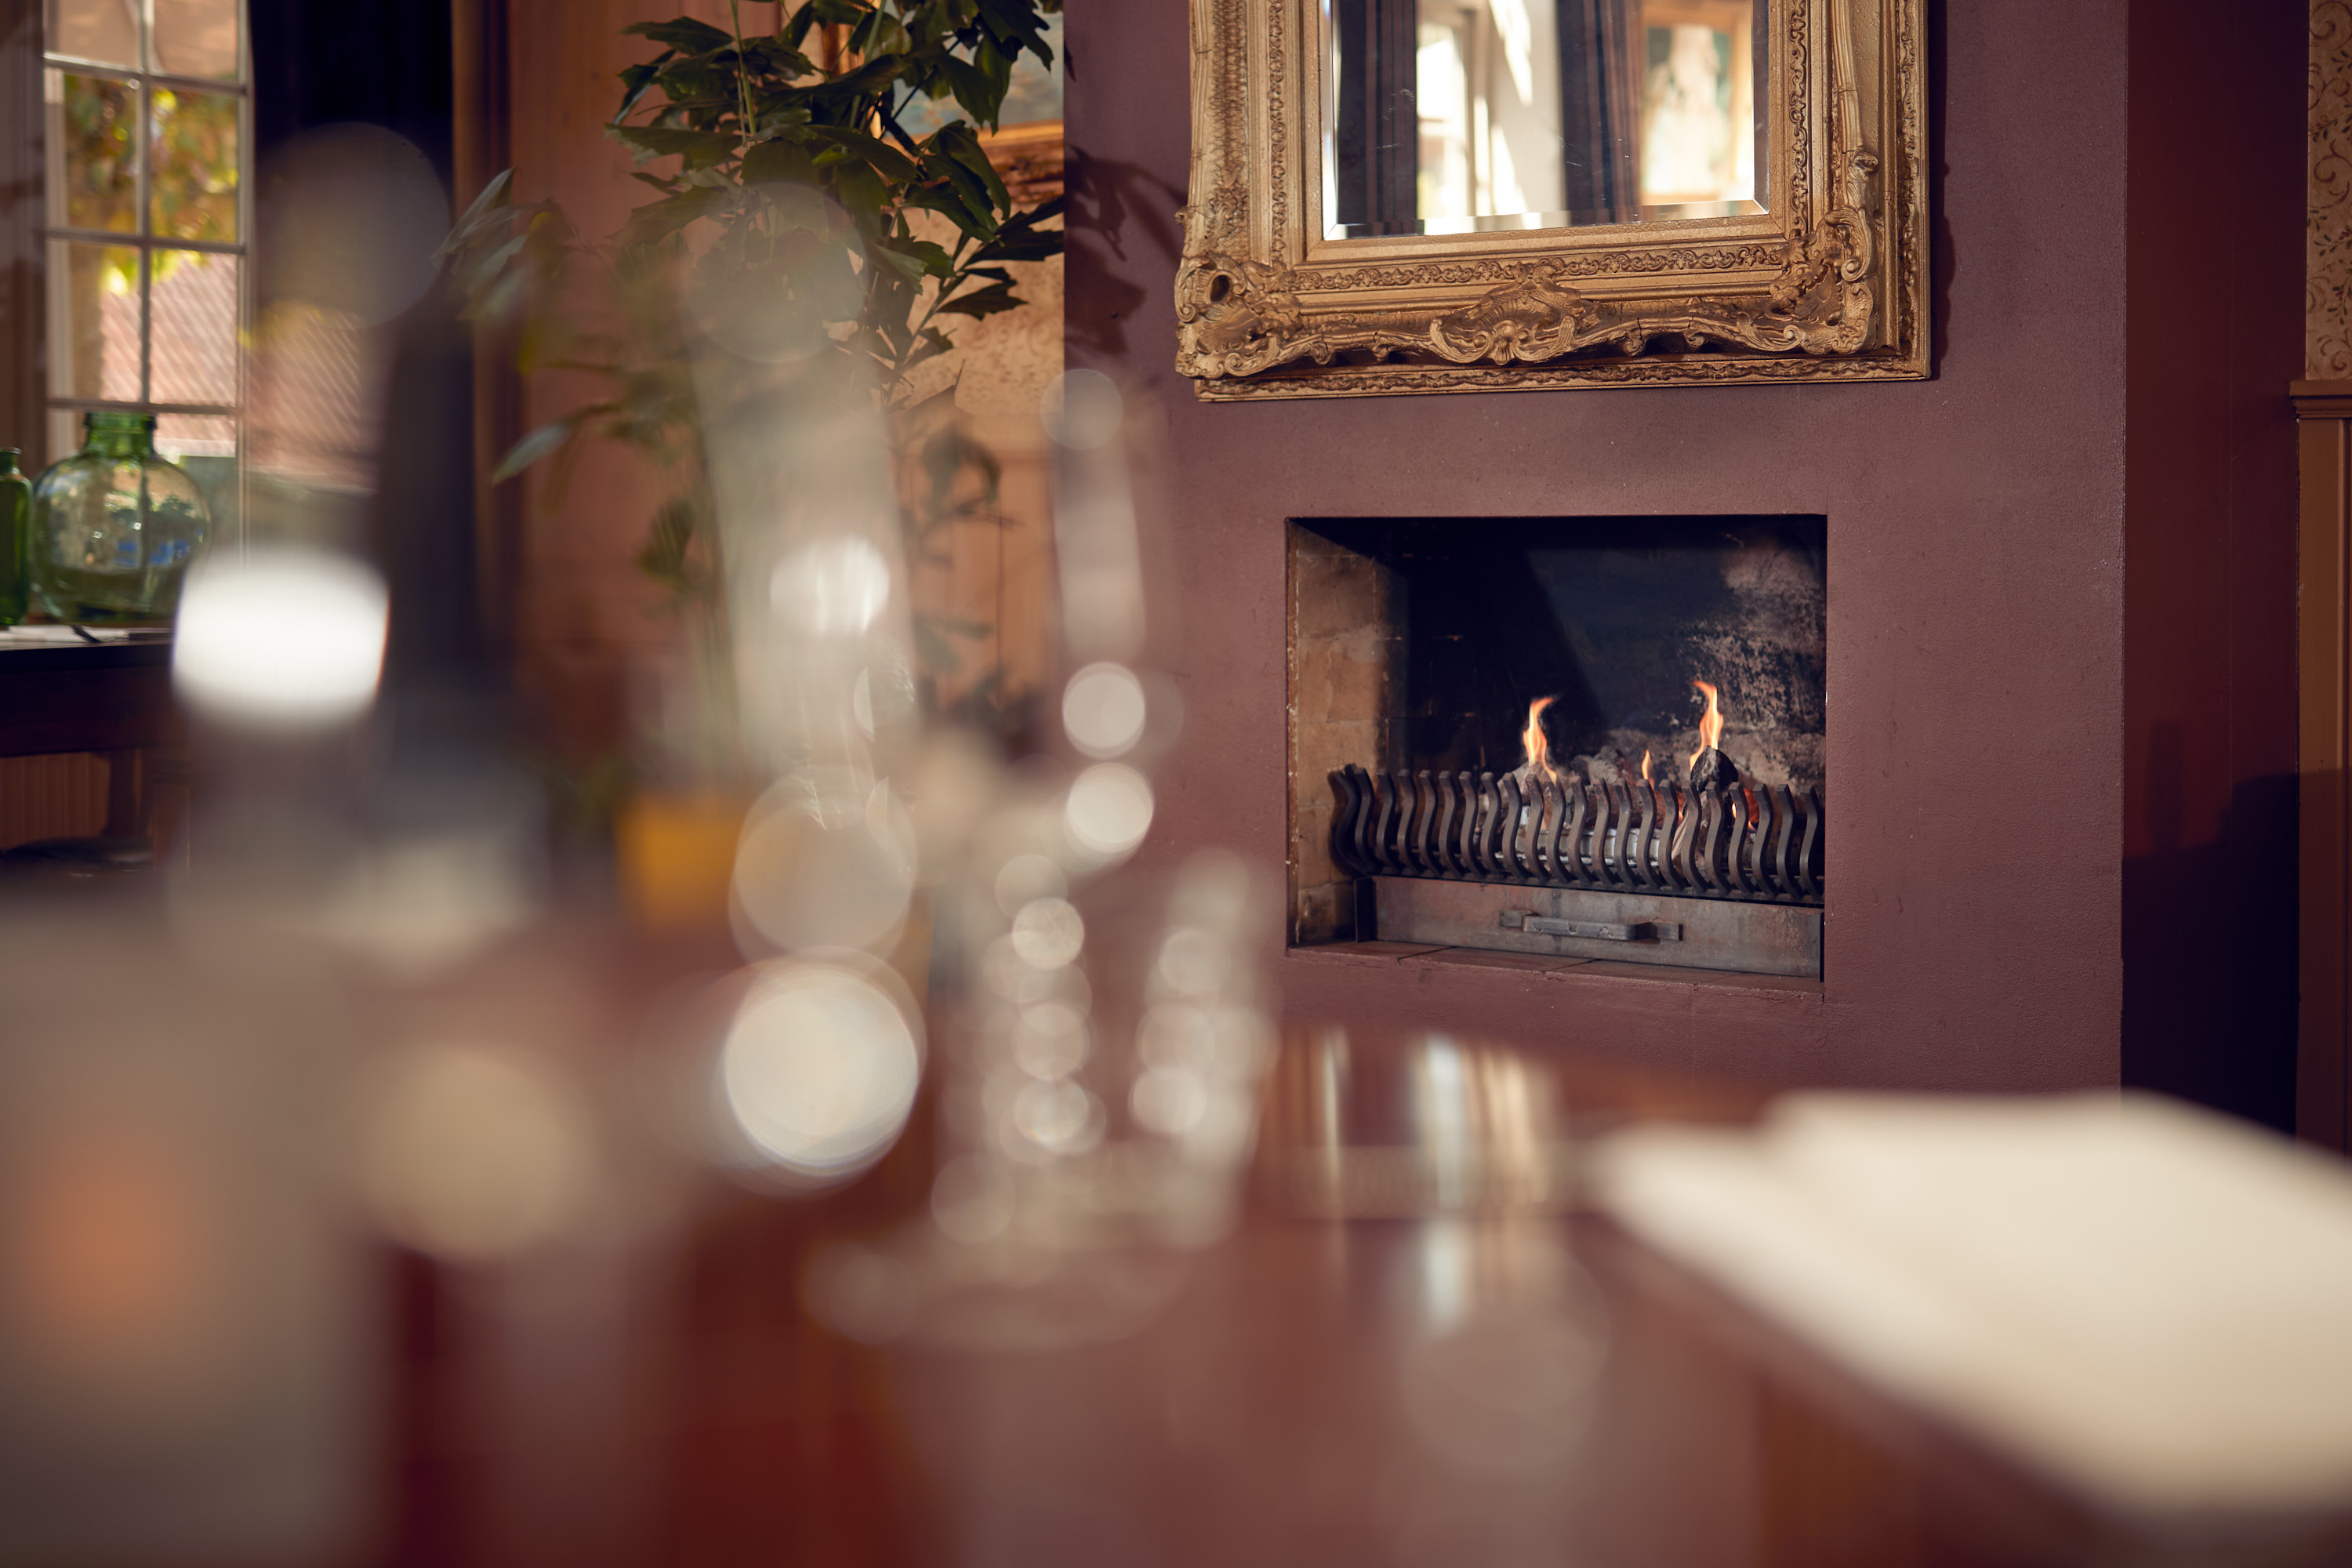 Restaurant - Fireplace